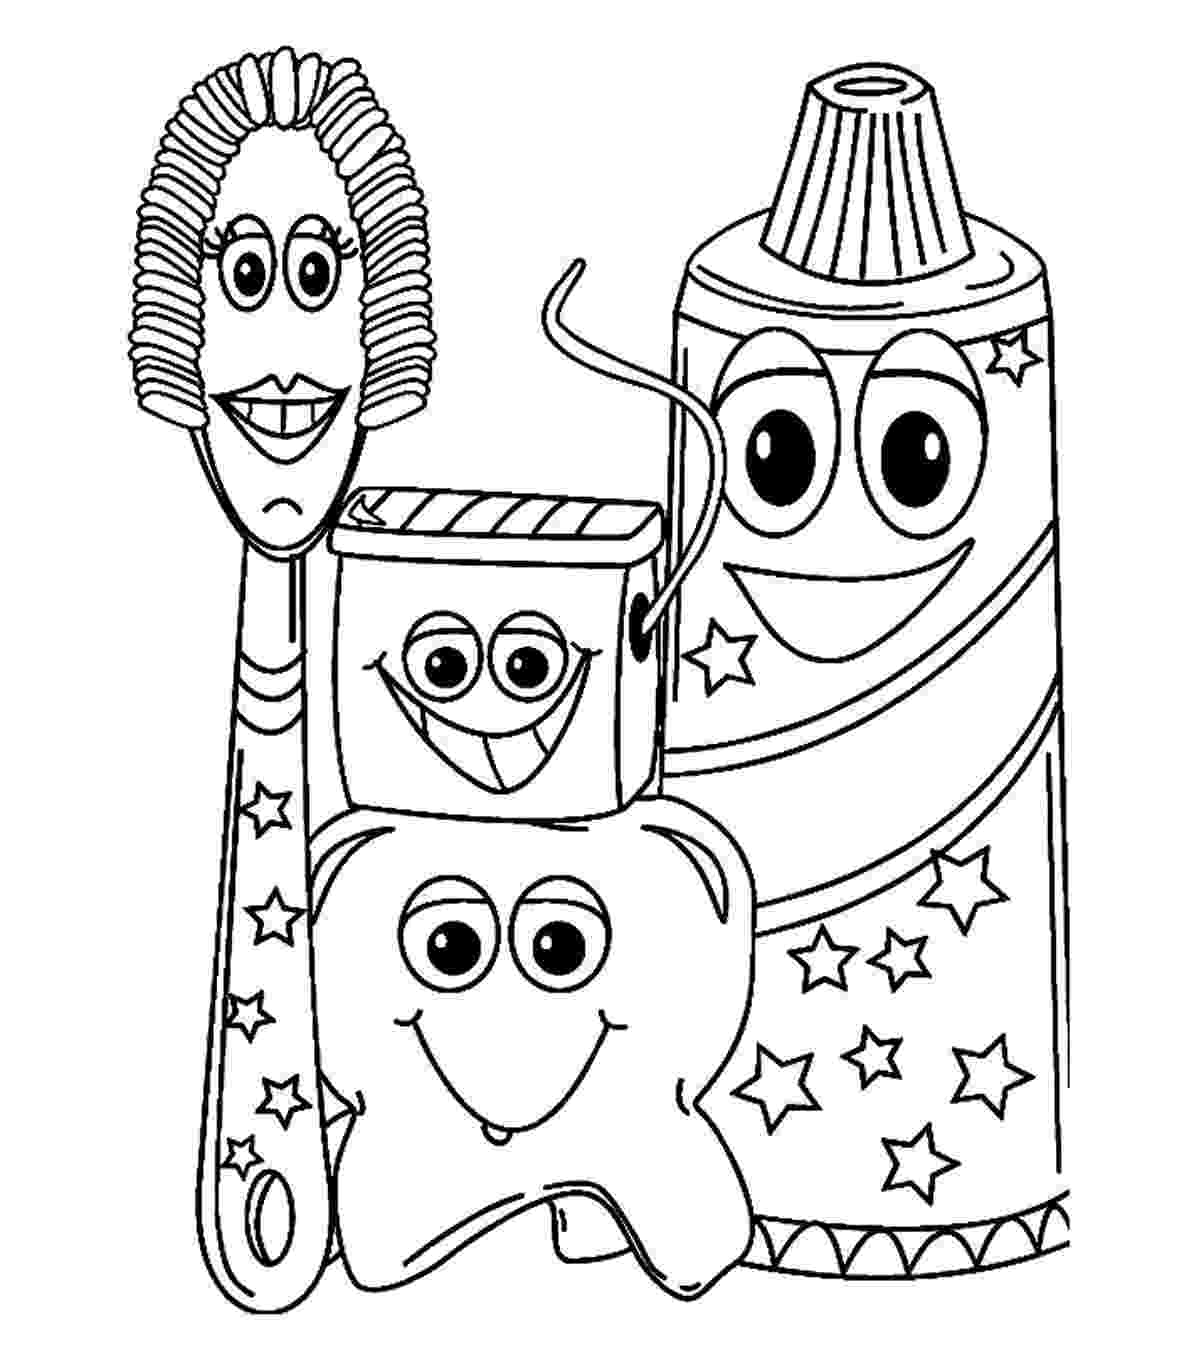 teeth coloring page tooth cartoon pictures of teeth coloring page tooth teeth coloring page